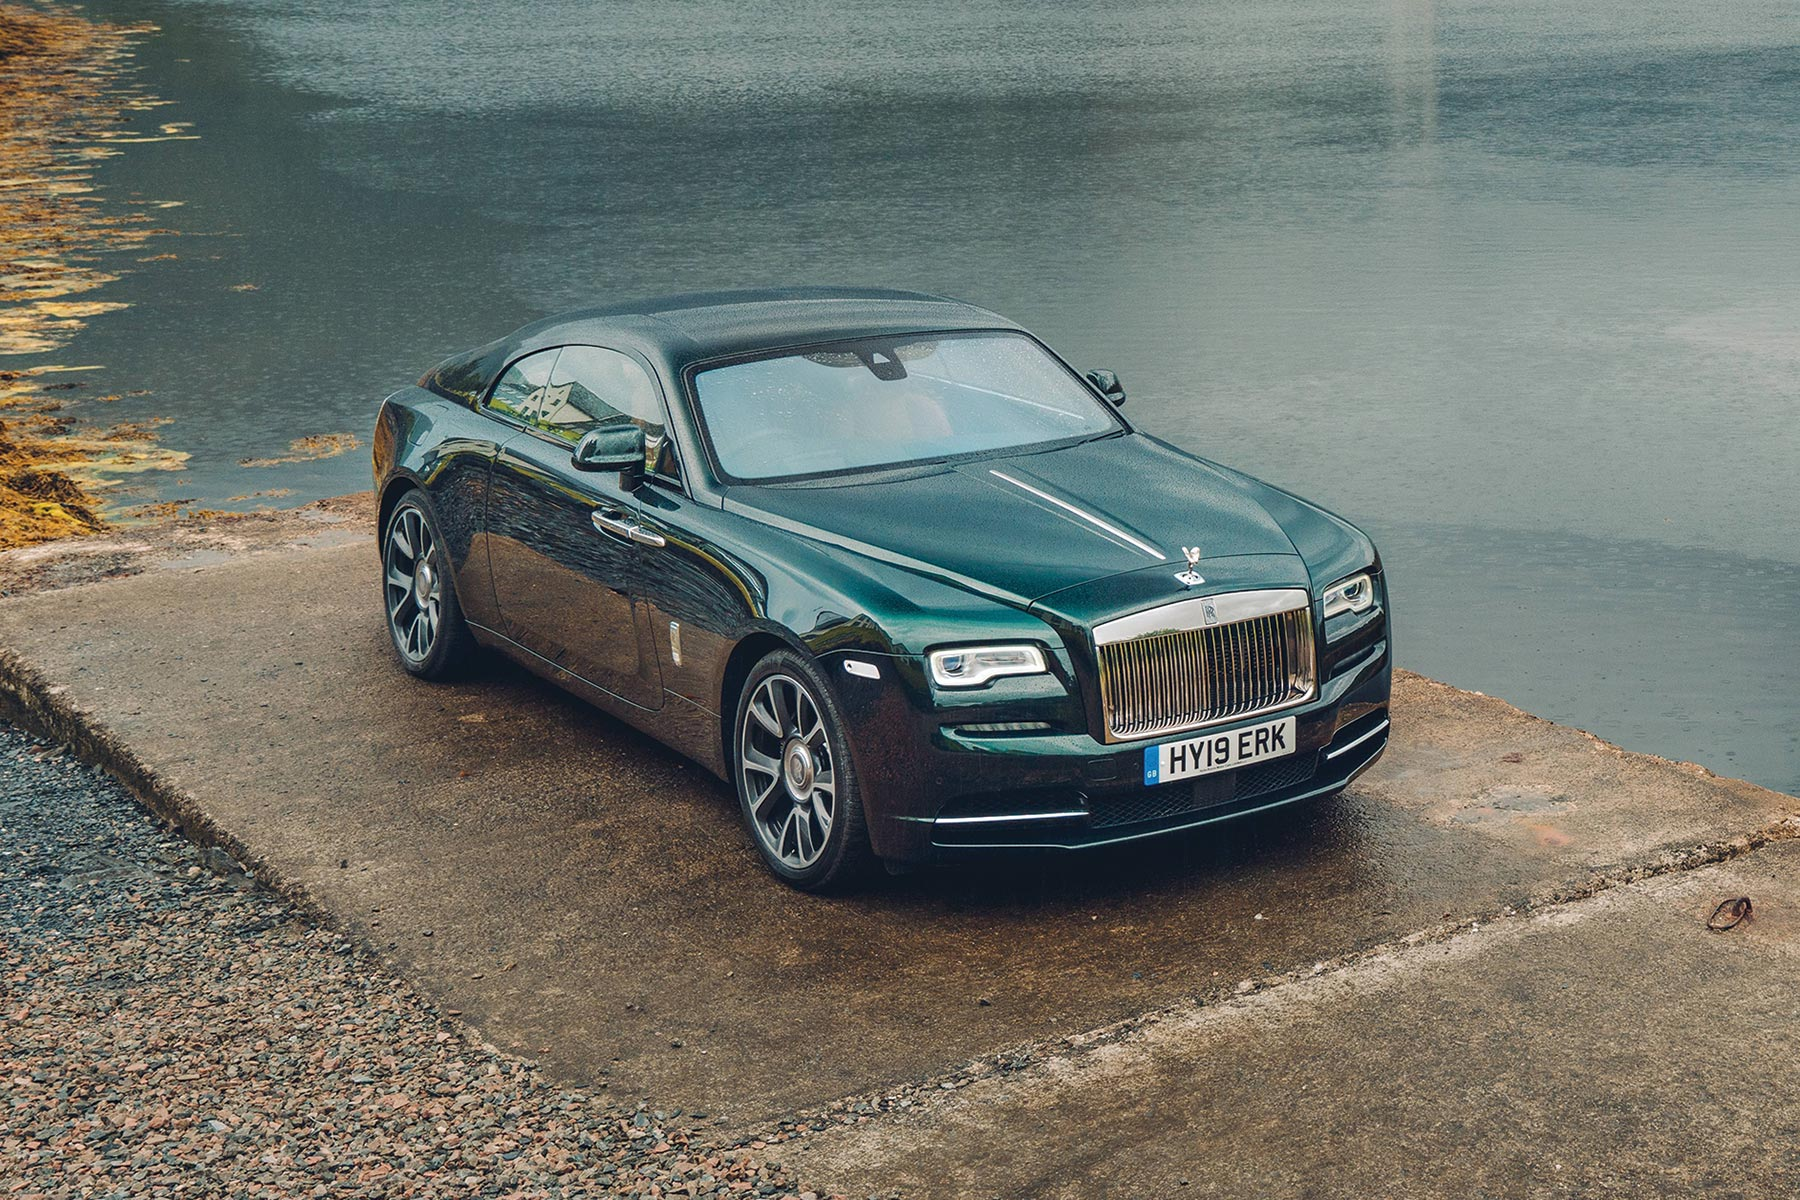 2020 Rolls Royce Wraith Black Badge Essential Marbella Magazine